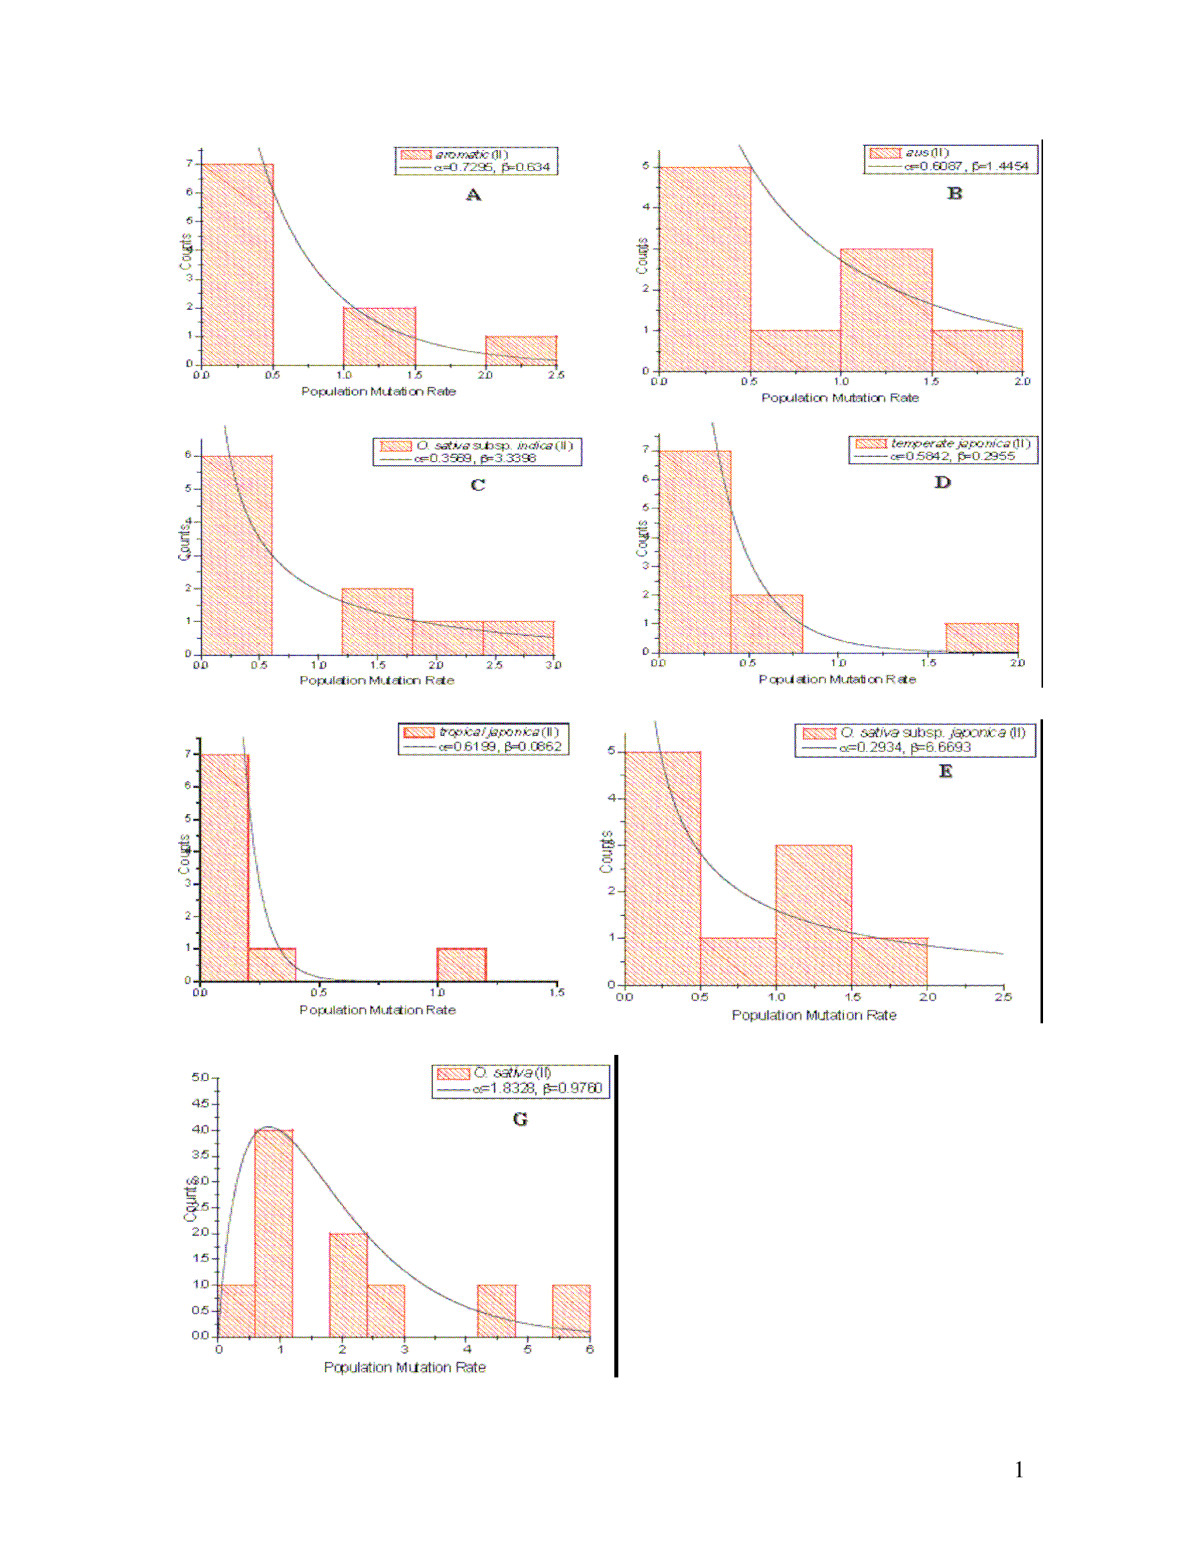 https://static-content.springer.com/image/art%3A10.1186%2F1471-2148-8-11/MediaObjects/12862_2006_Article_580_Fig4_HTML.jpg